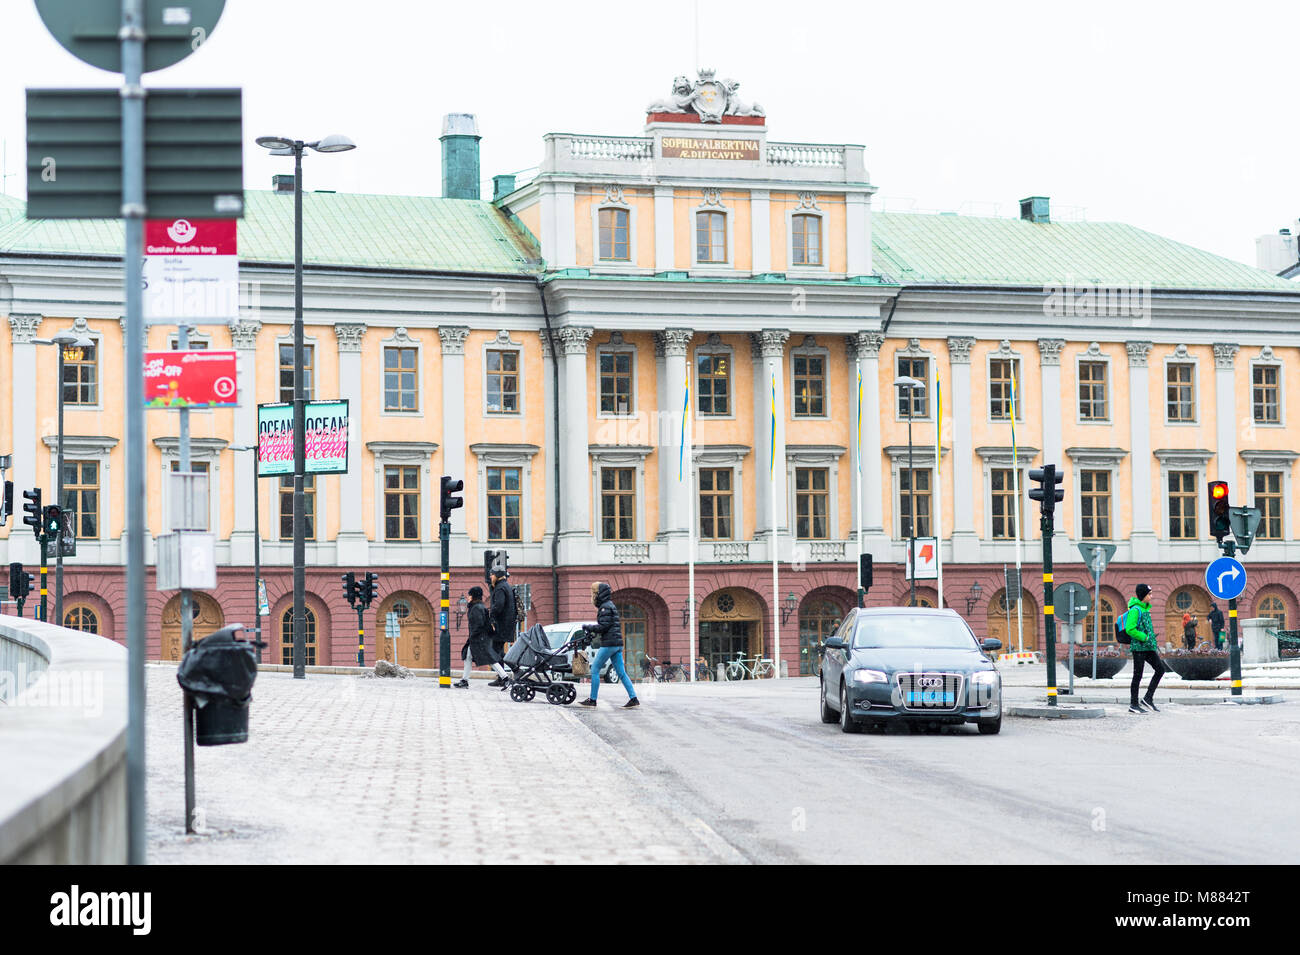 Stockholm, Sweden, March 15, 2018. Ministry for Foreign Affairs. - Stock Image